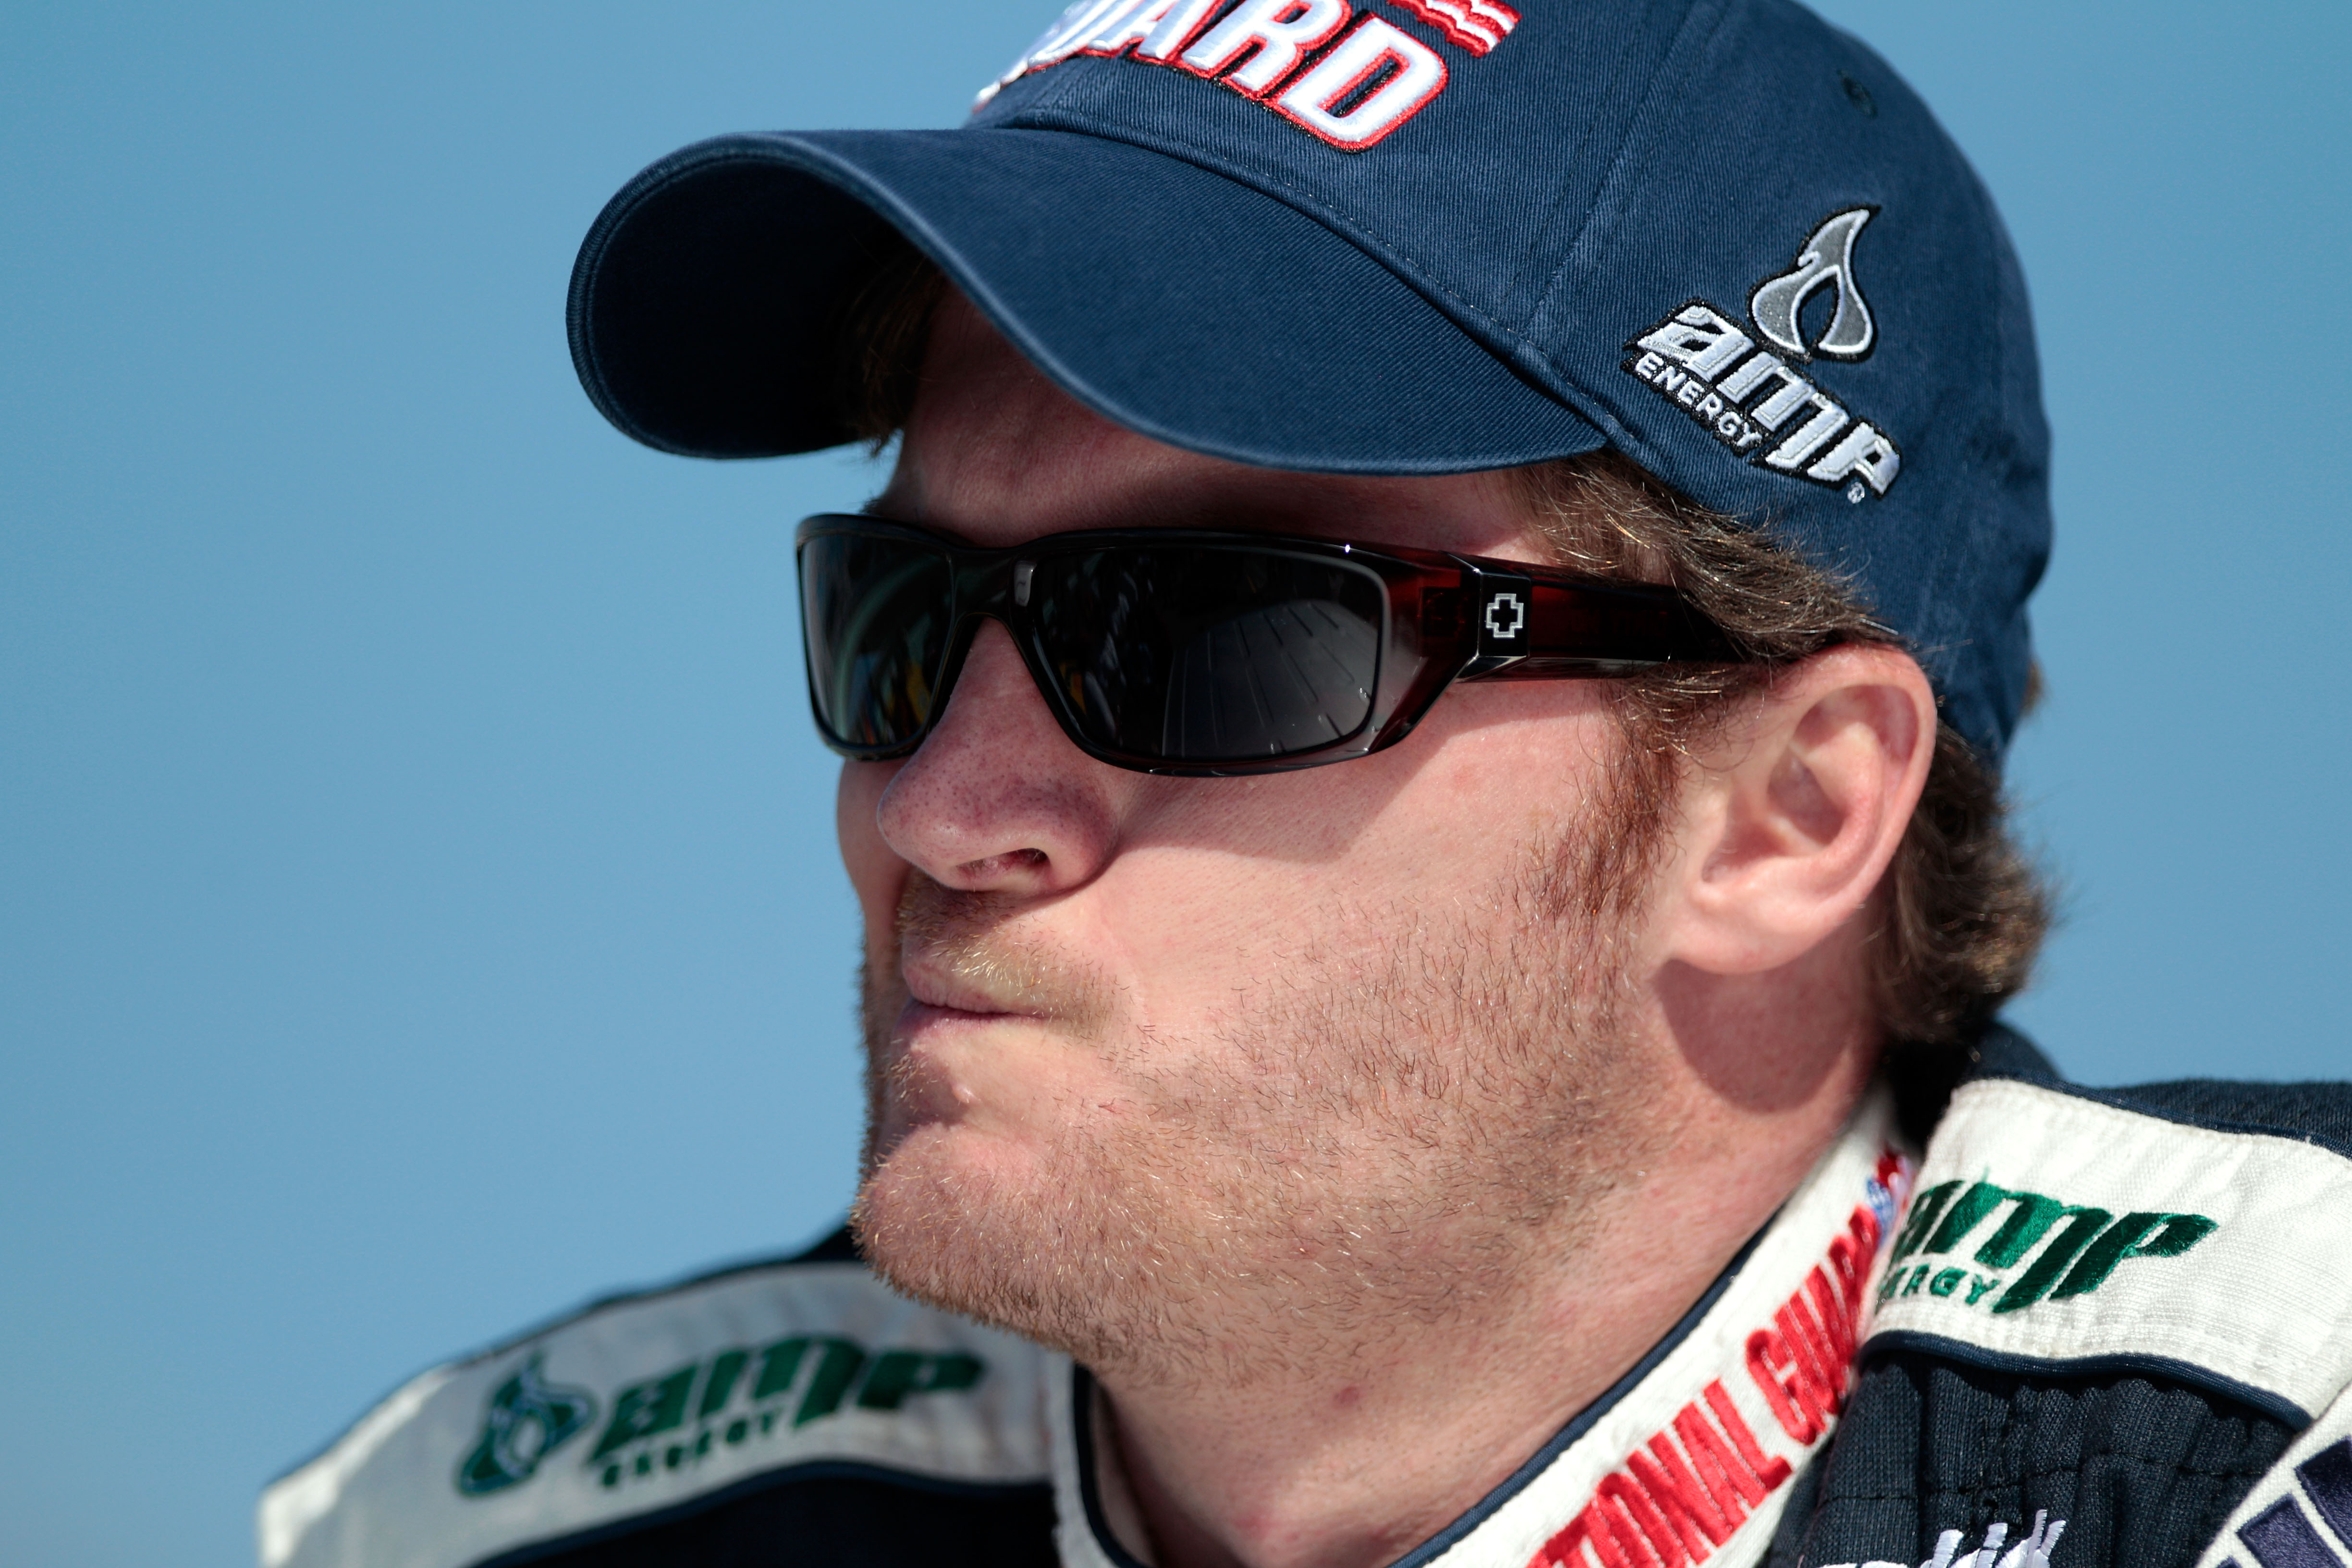 HOMESTEAD, FL - NOVEMBER 21:  Dale Earnhardt Jr., driver of the #88 National Guard/AMP Energy Chevrolet, stands on pit road prior to the NASCAR Sprint Cup Series Ford 400 at Homestead-Miami Speedway on November 21, 2010 in Homestead, Florida.  (Photo by C